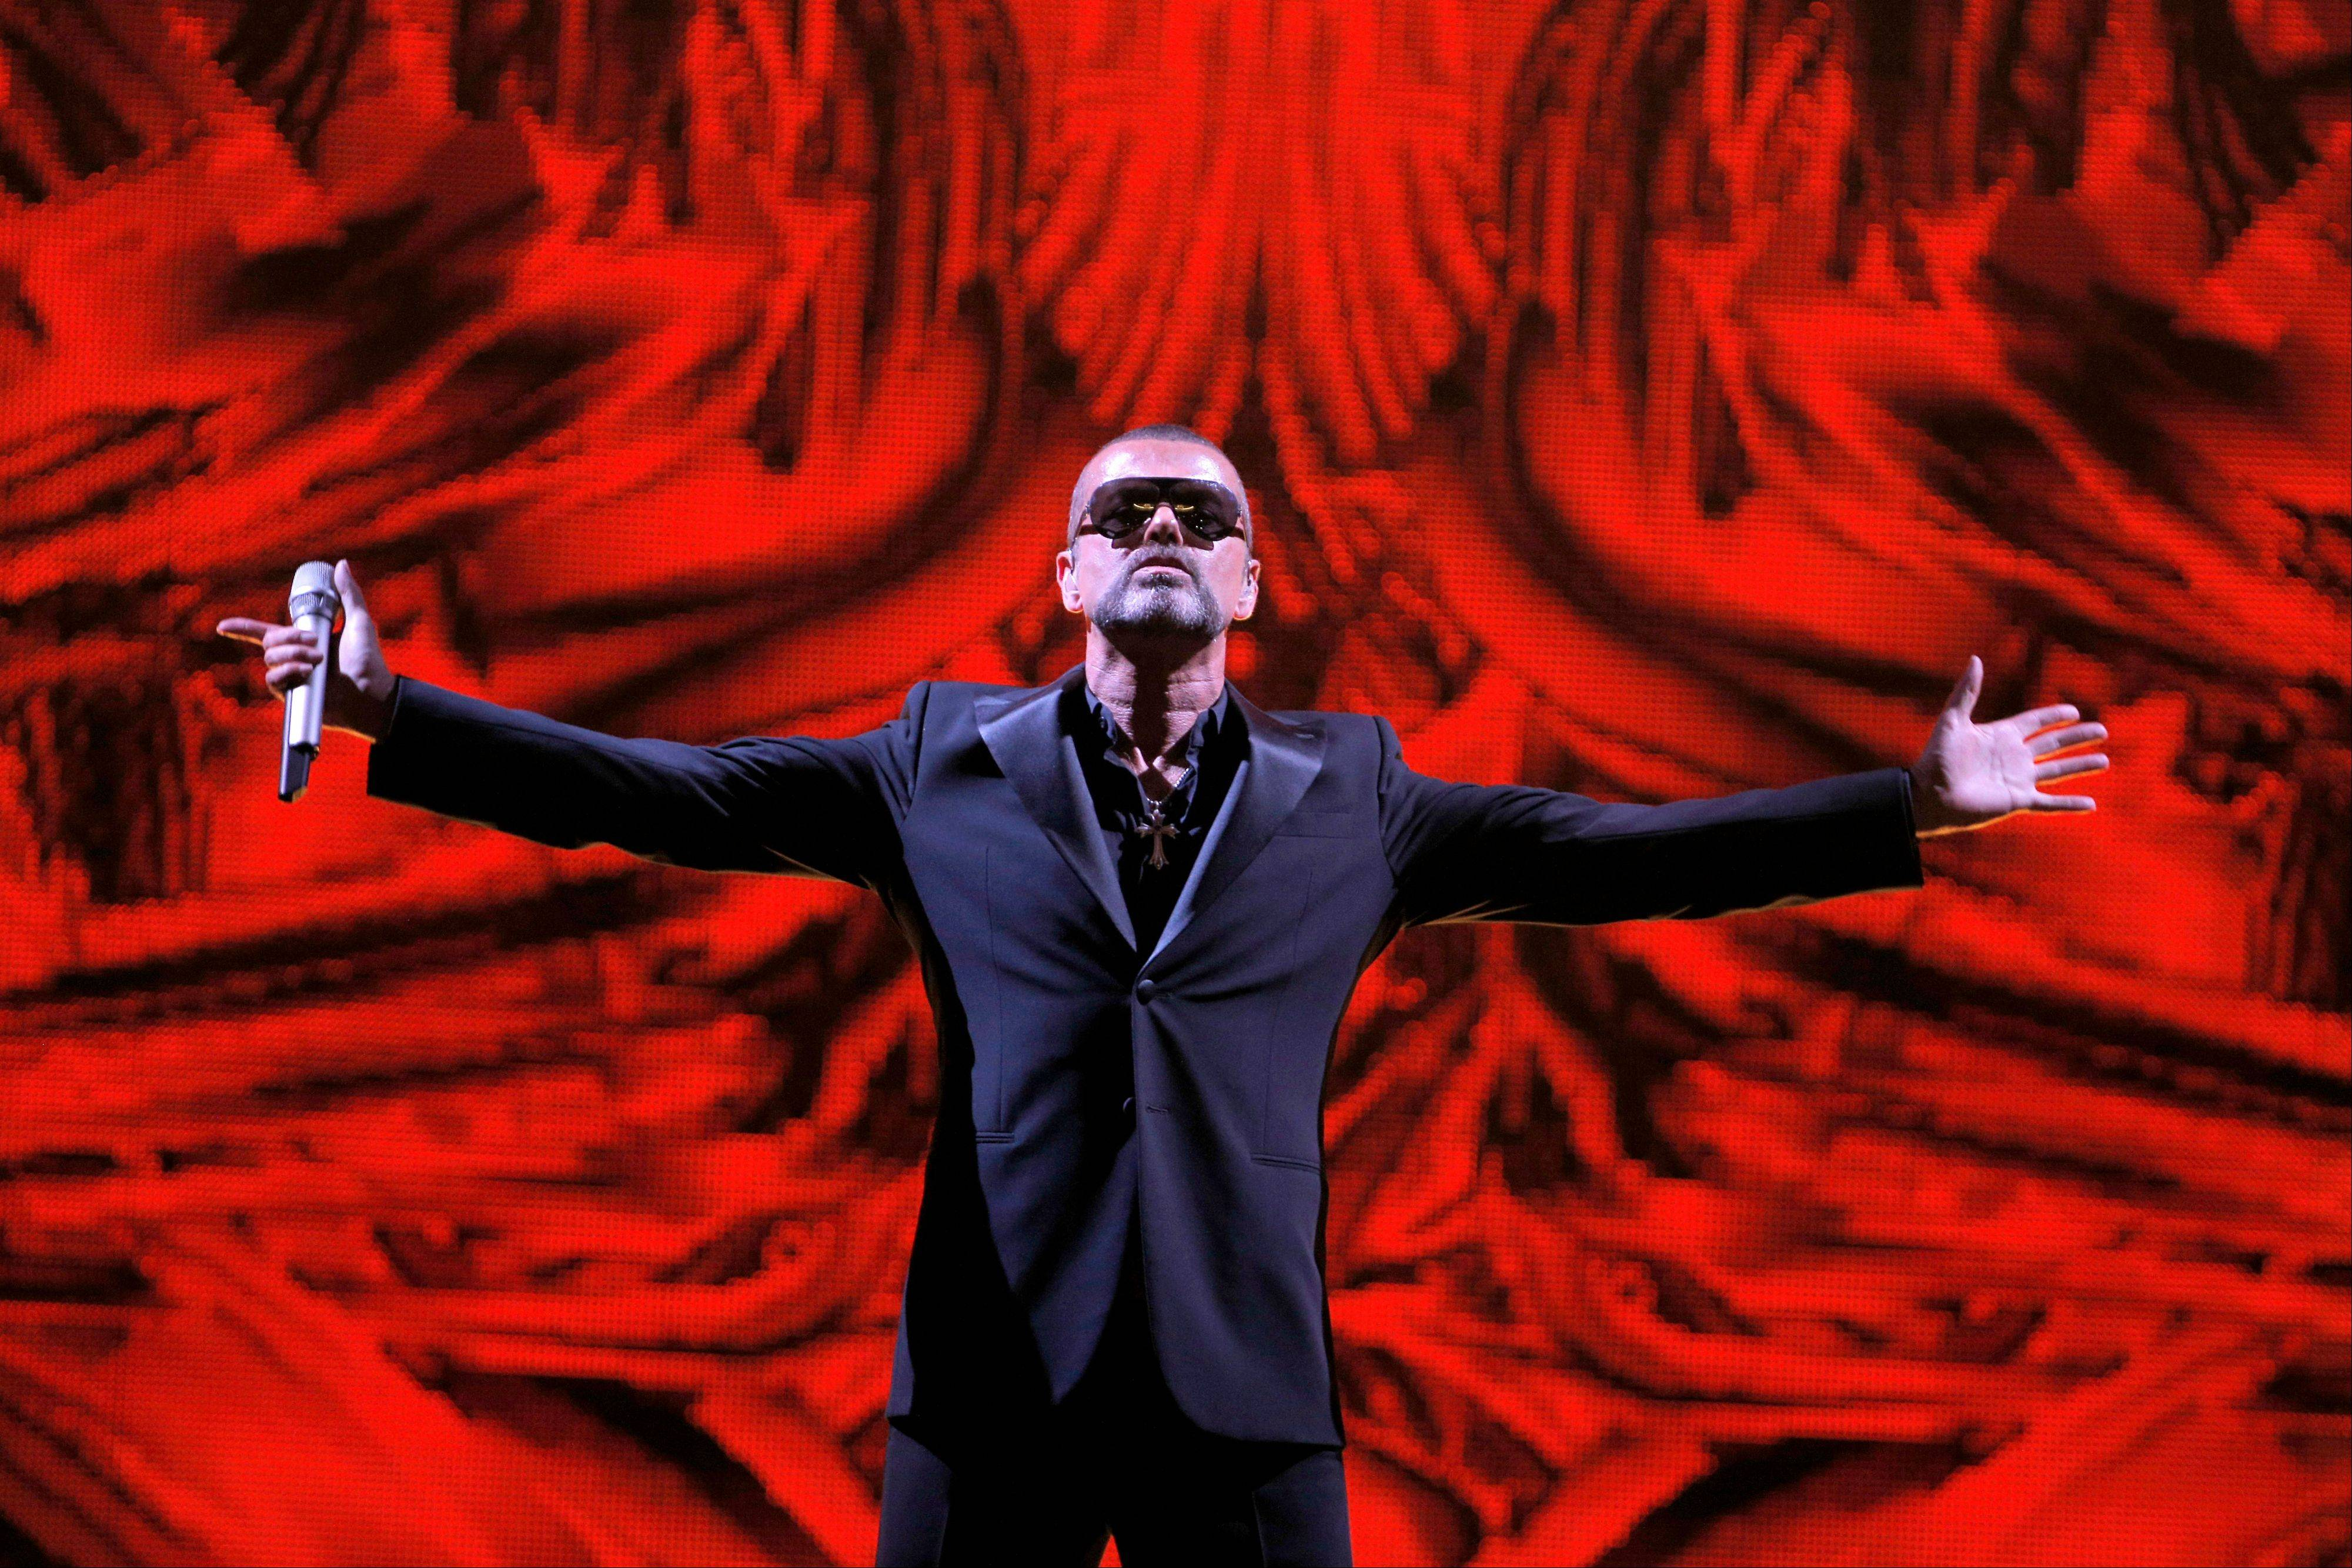 British singer George Michael is canceling Australian shows so he can get treatment for major anxiety.